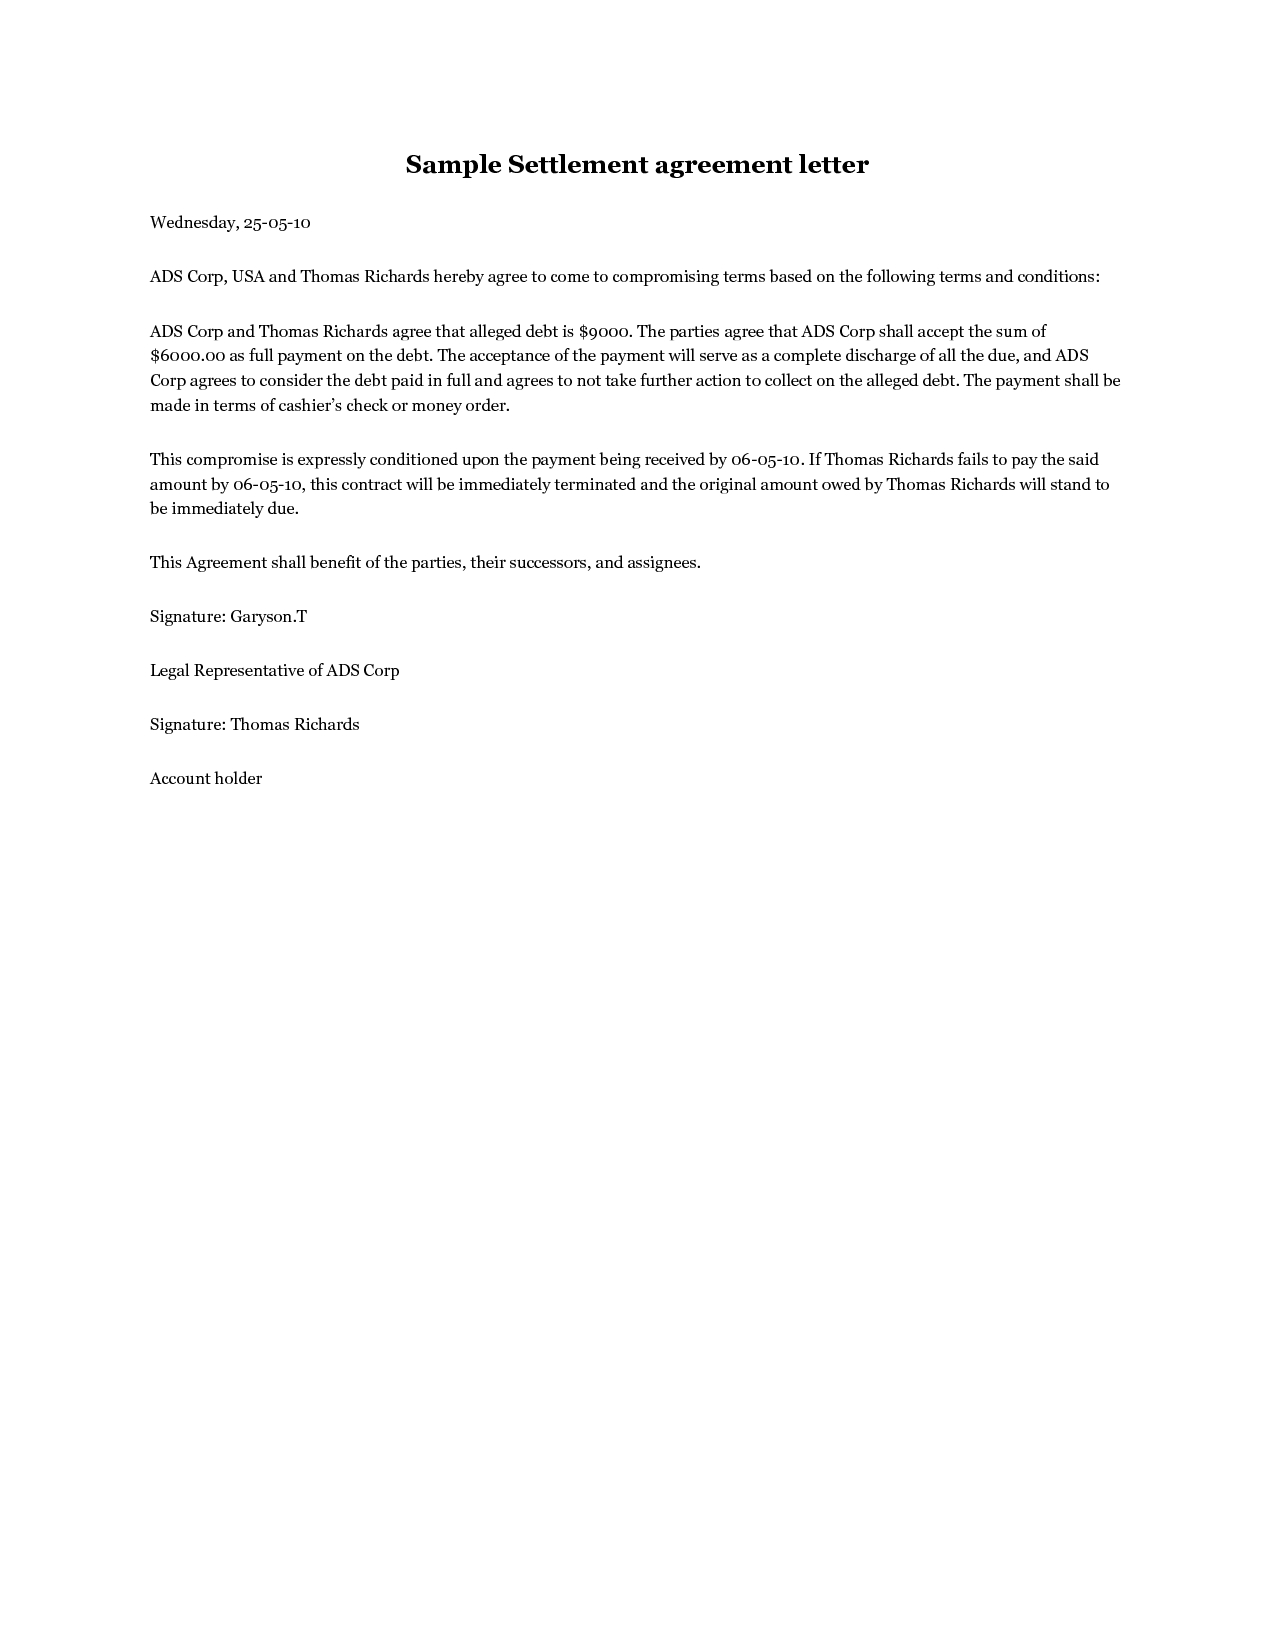 Credit Card Settlement Letter Template - Settlement Agreement Letter A Debt Settlement Agreement Letter